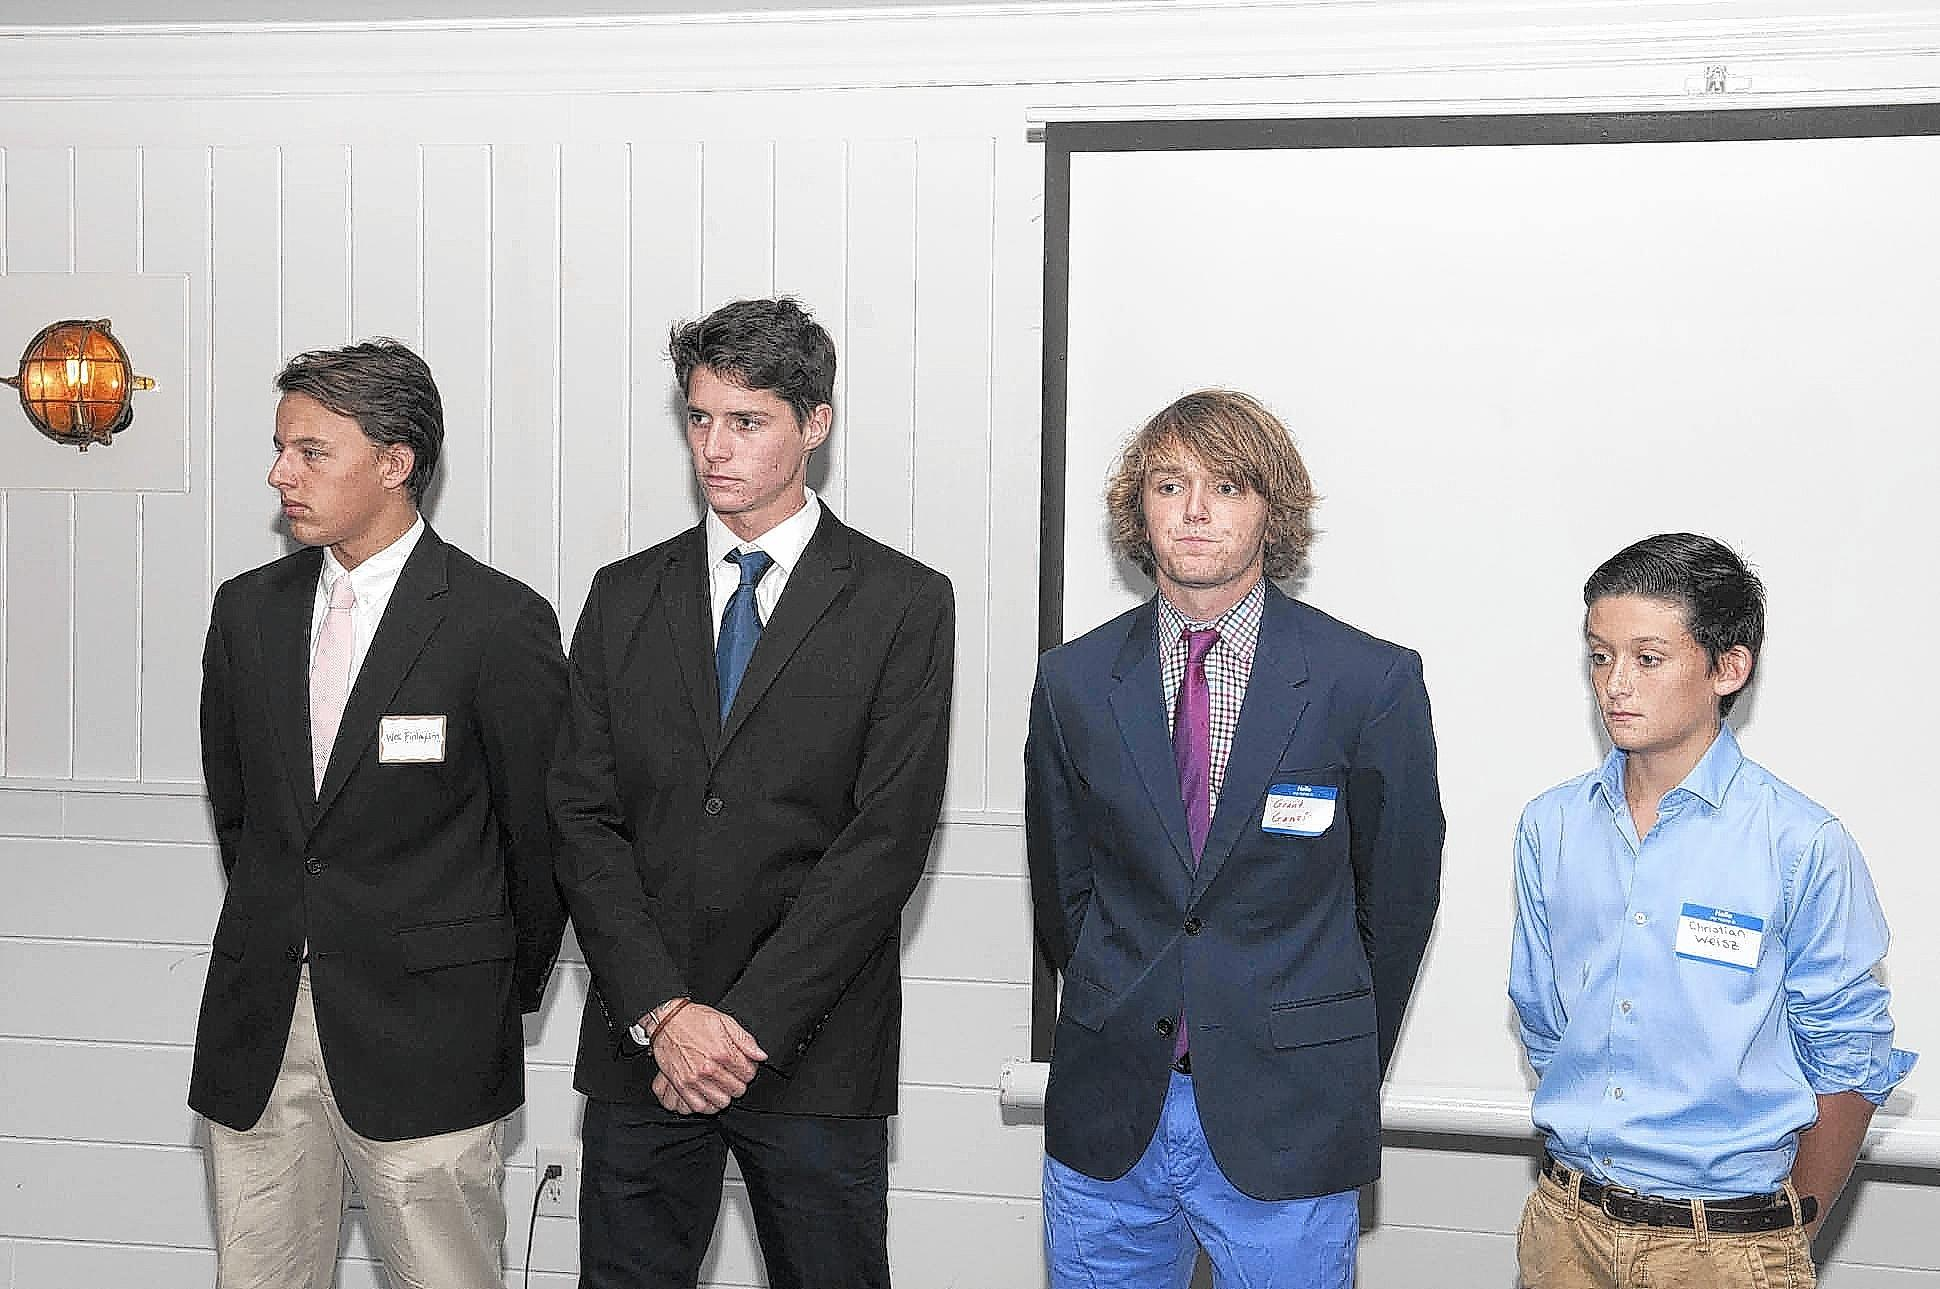 From right Wes Finlayson, Juan Bollini, Grant Ganzi, and Christian Weisz are honored for winning the National Youth Tournament, during the State of the Village, which took place at the Wanderers club in Wellington on Sept. 24.